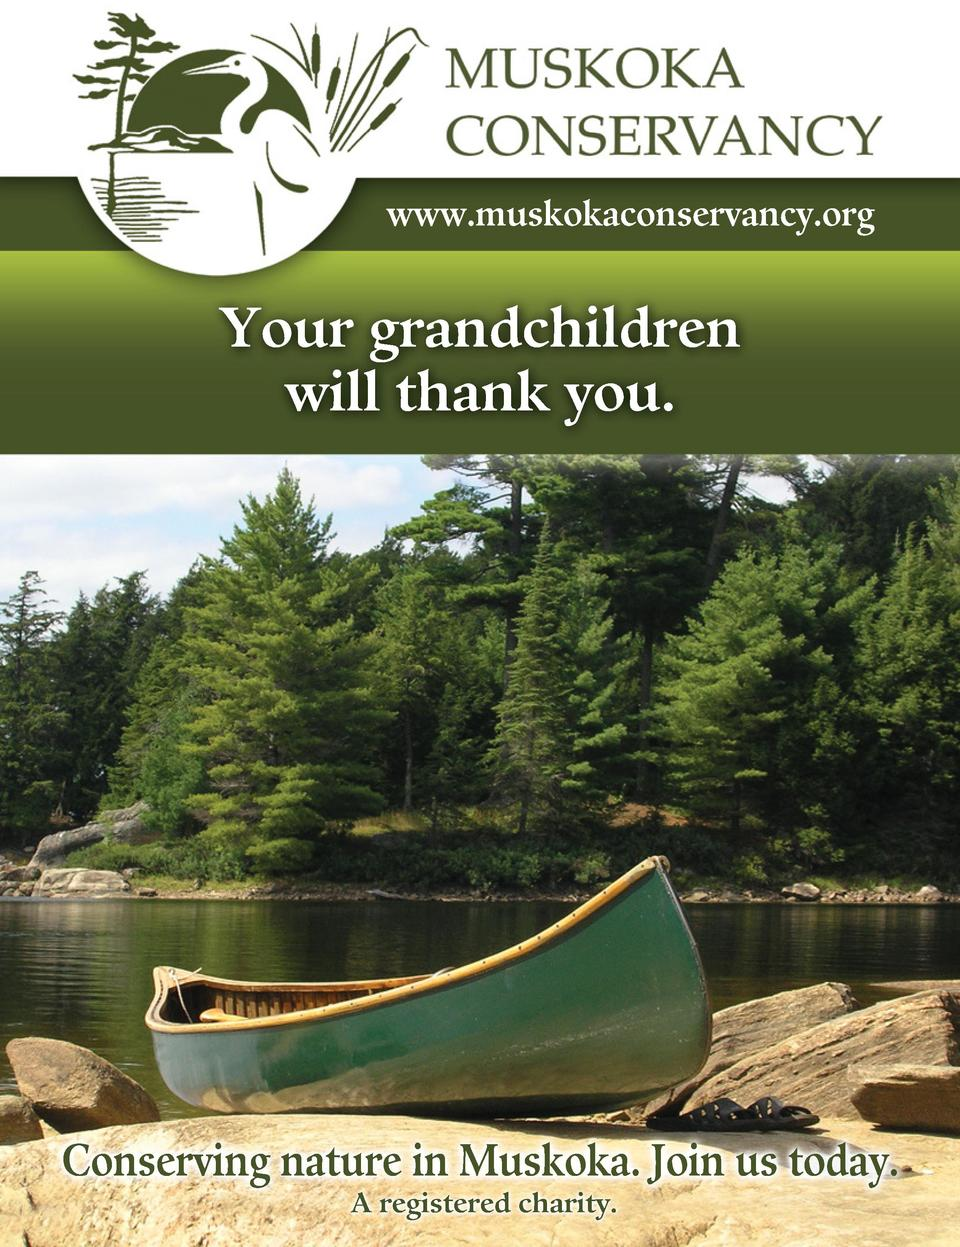 www.muskokaconservancy.org  Your grandchildren will thank you.  FULL PAGE Muskoka Conservancy  Conserving nature in Muskok...